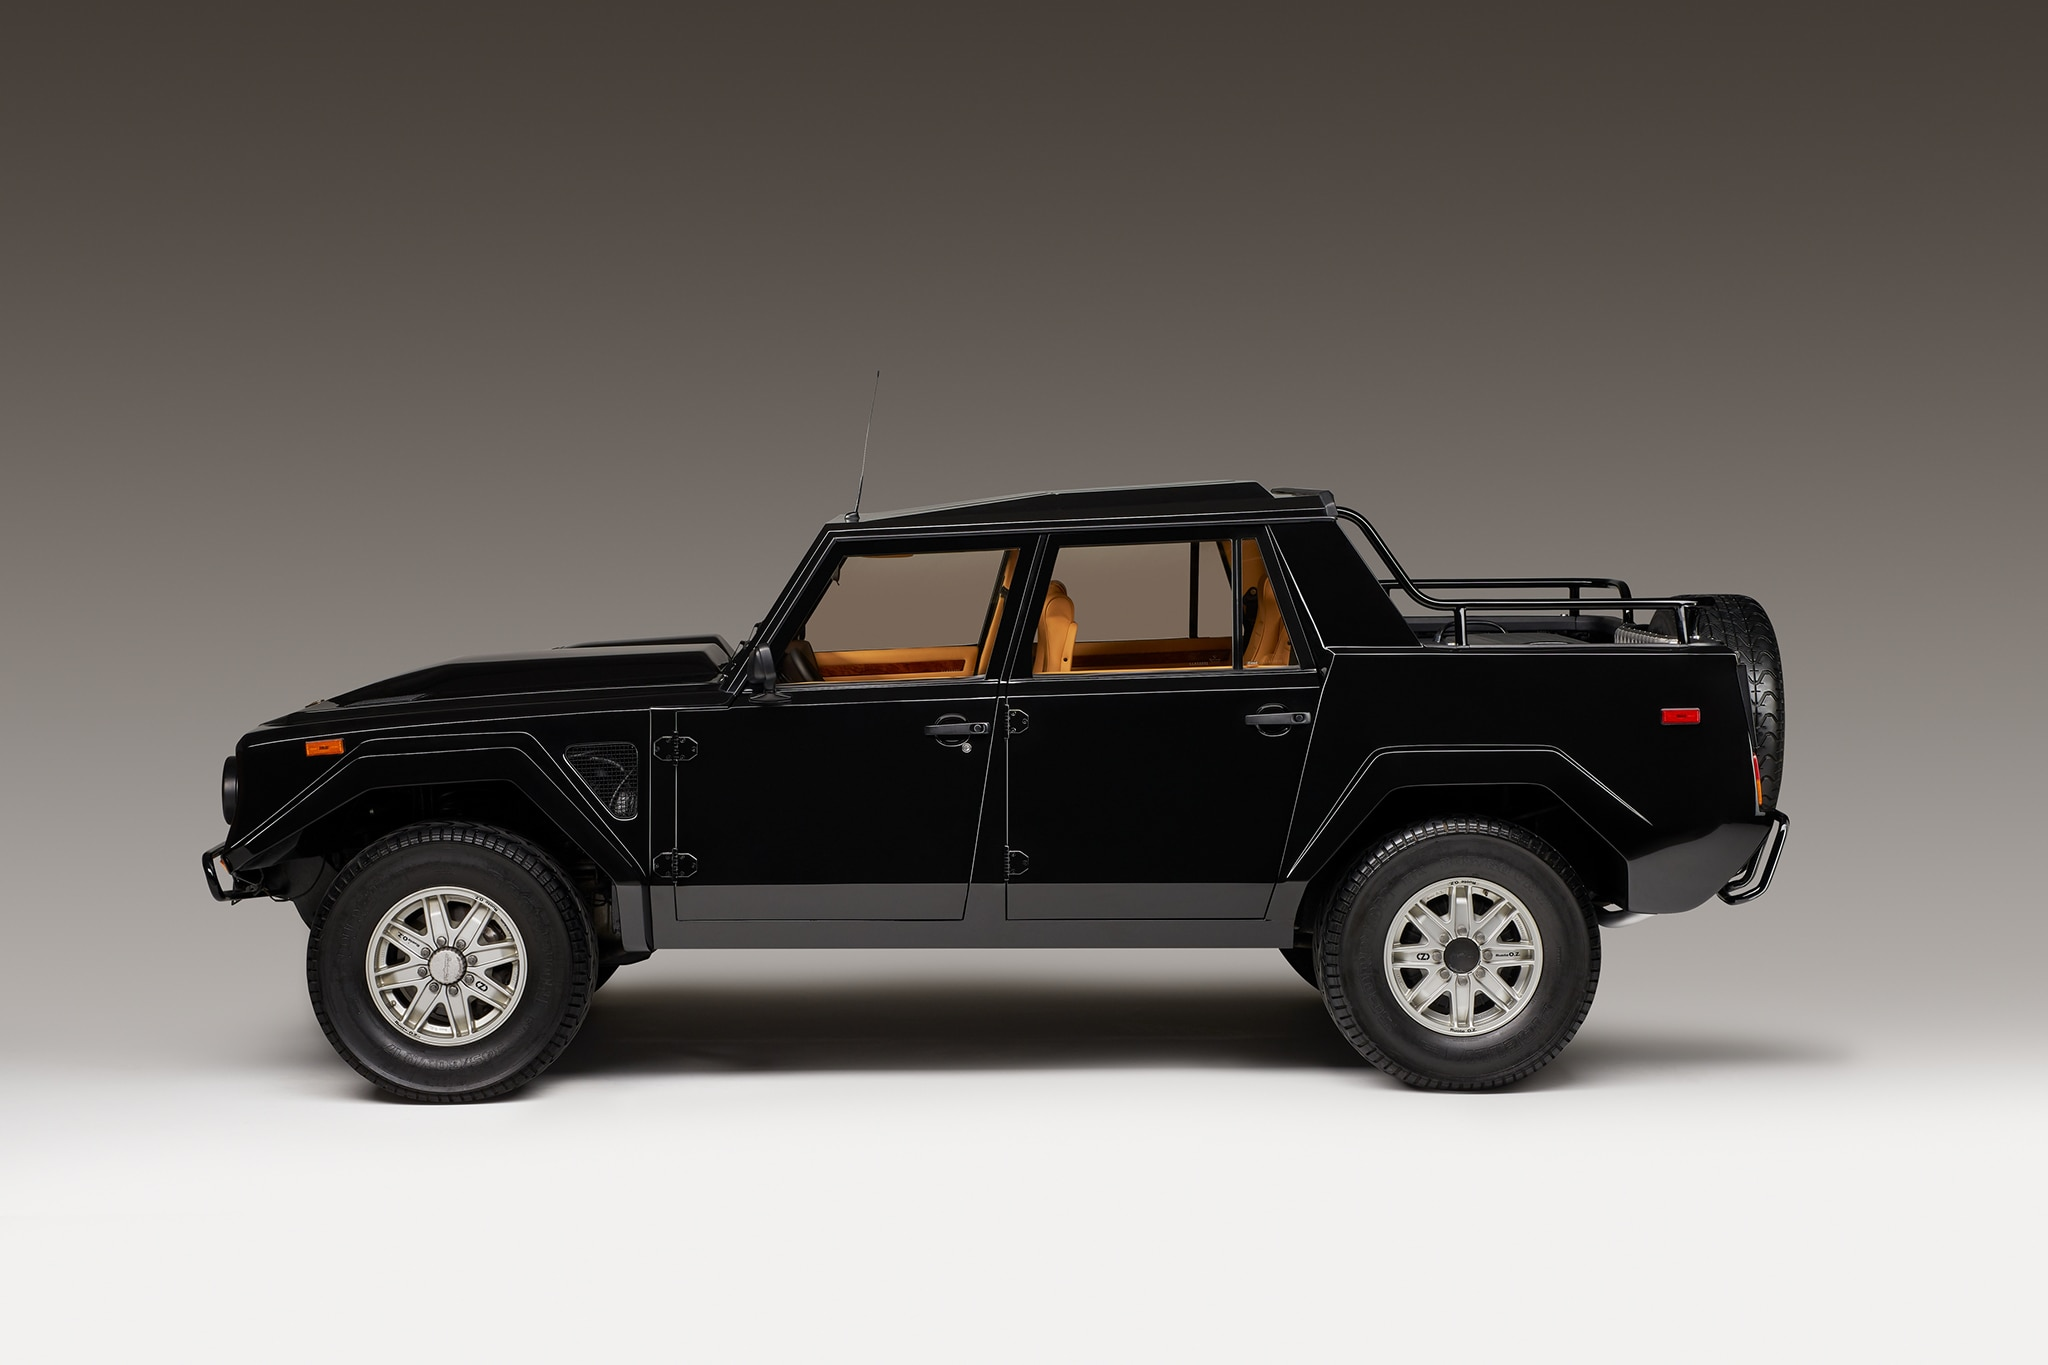 1986 1993 Lamborghini Lm002 Luxury Suv Review Automobile Magazine